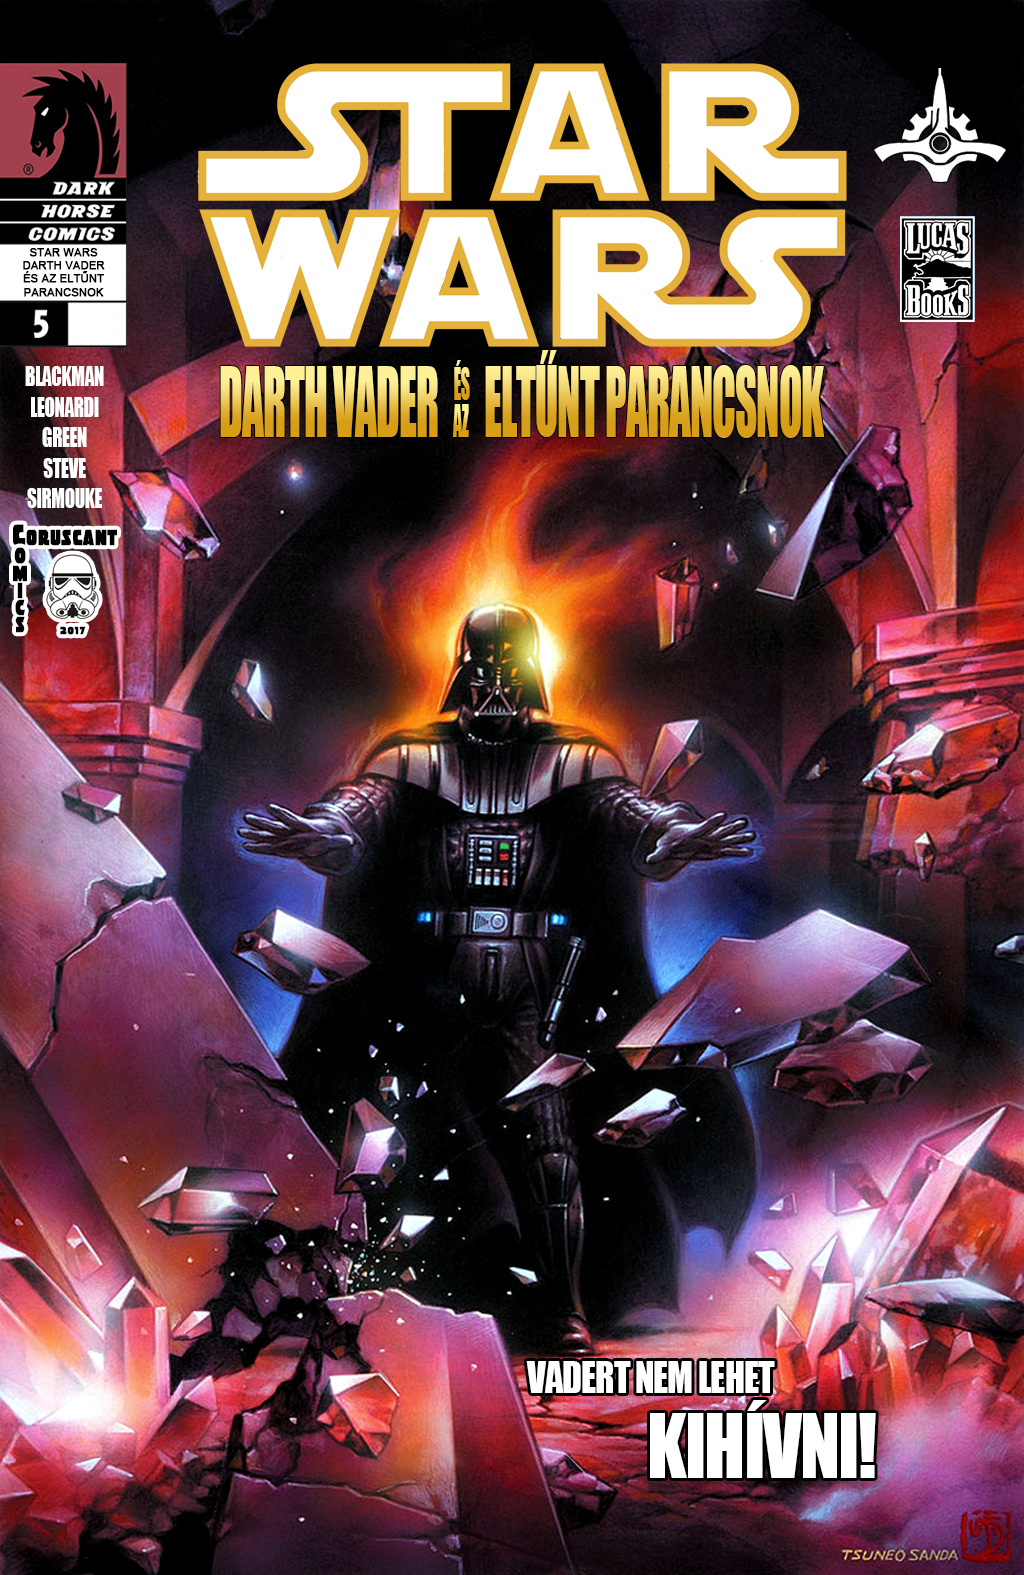 star_wars_darth_vader_and_the_lost_command_004-000.jpg